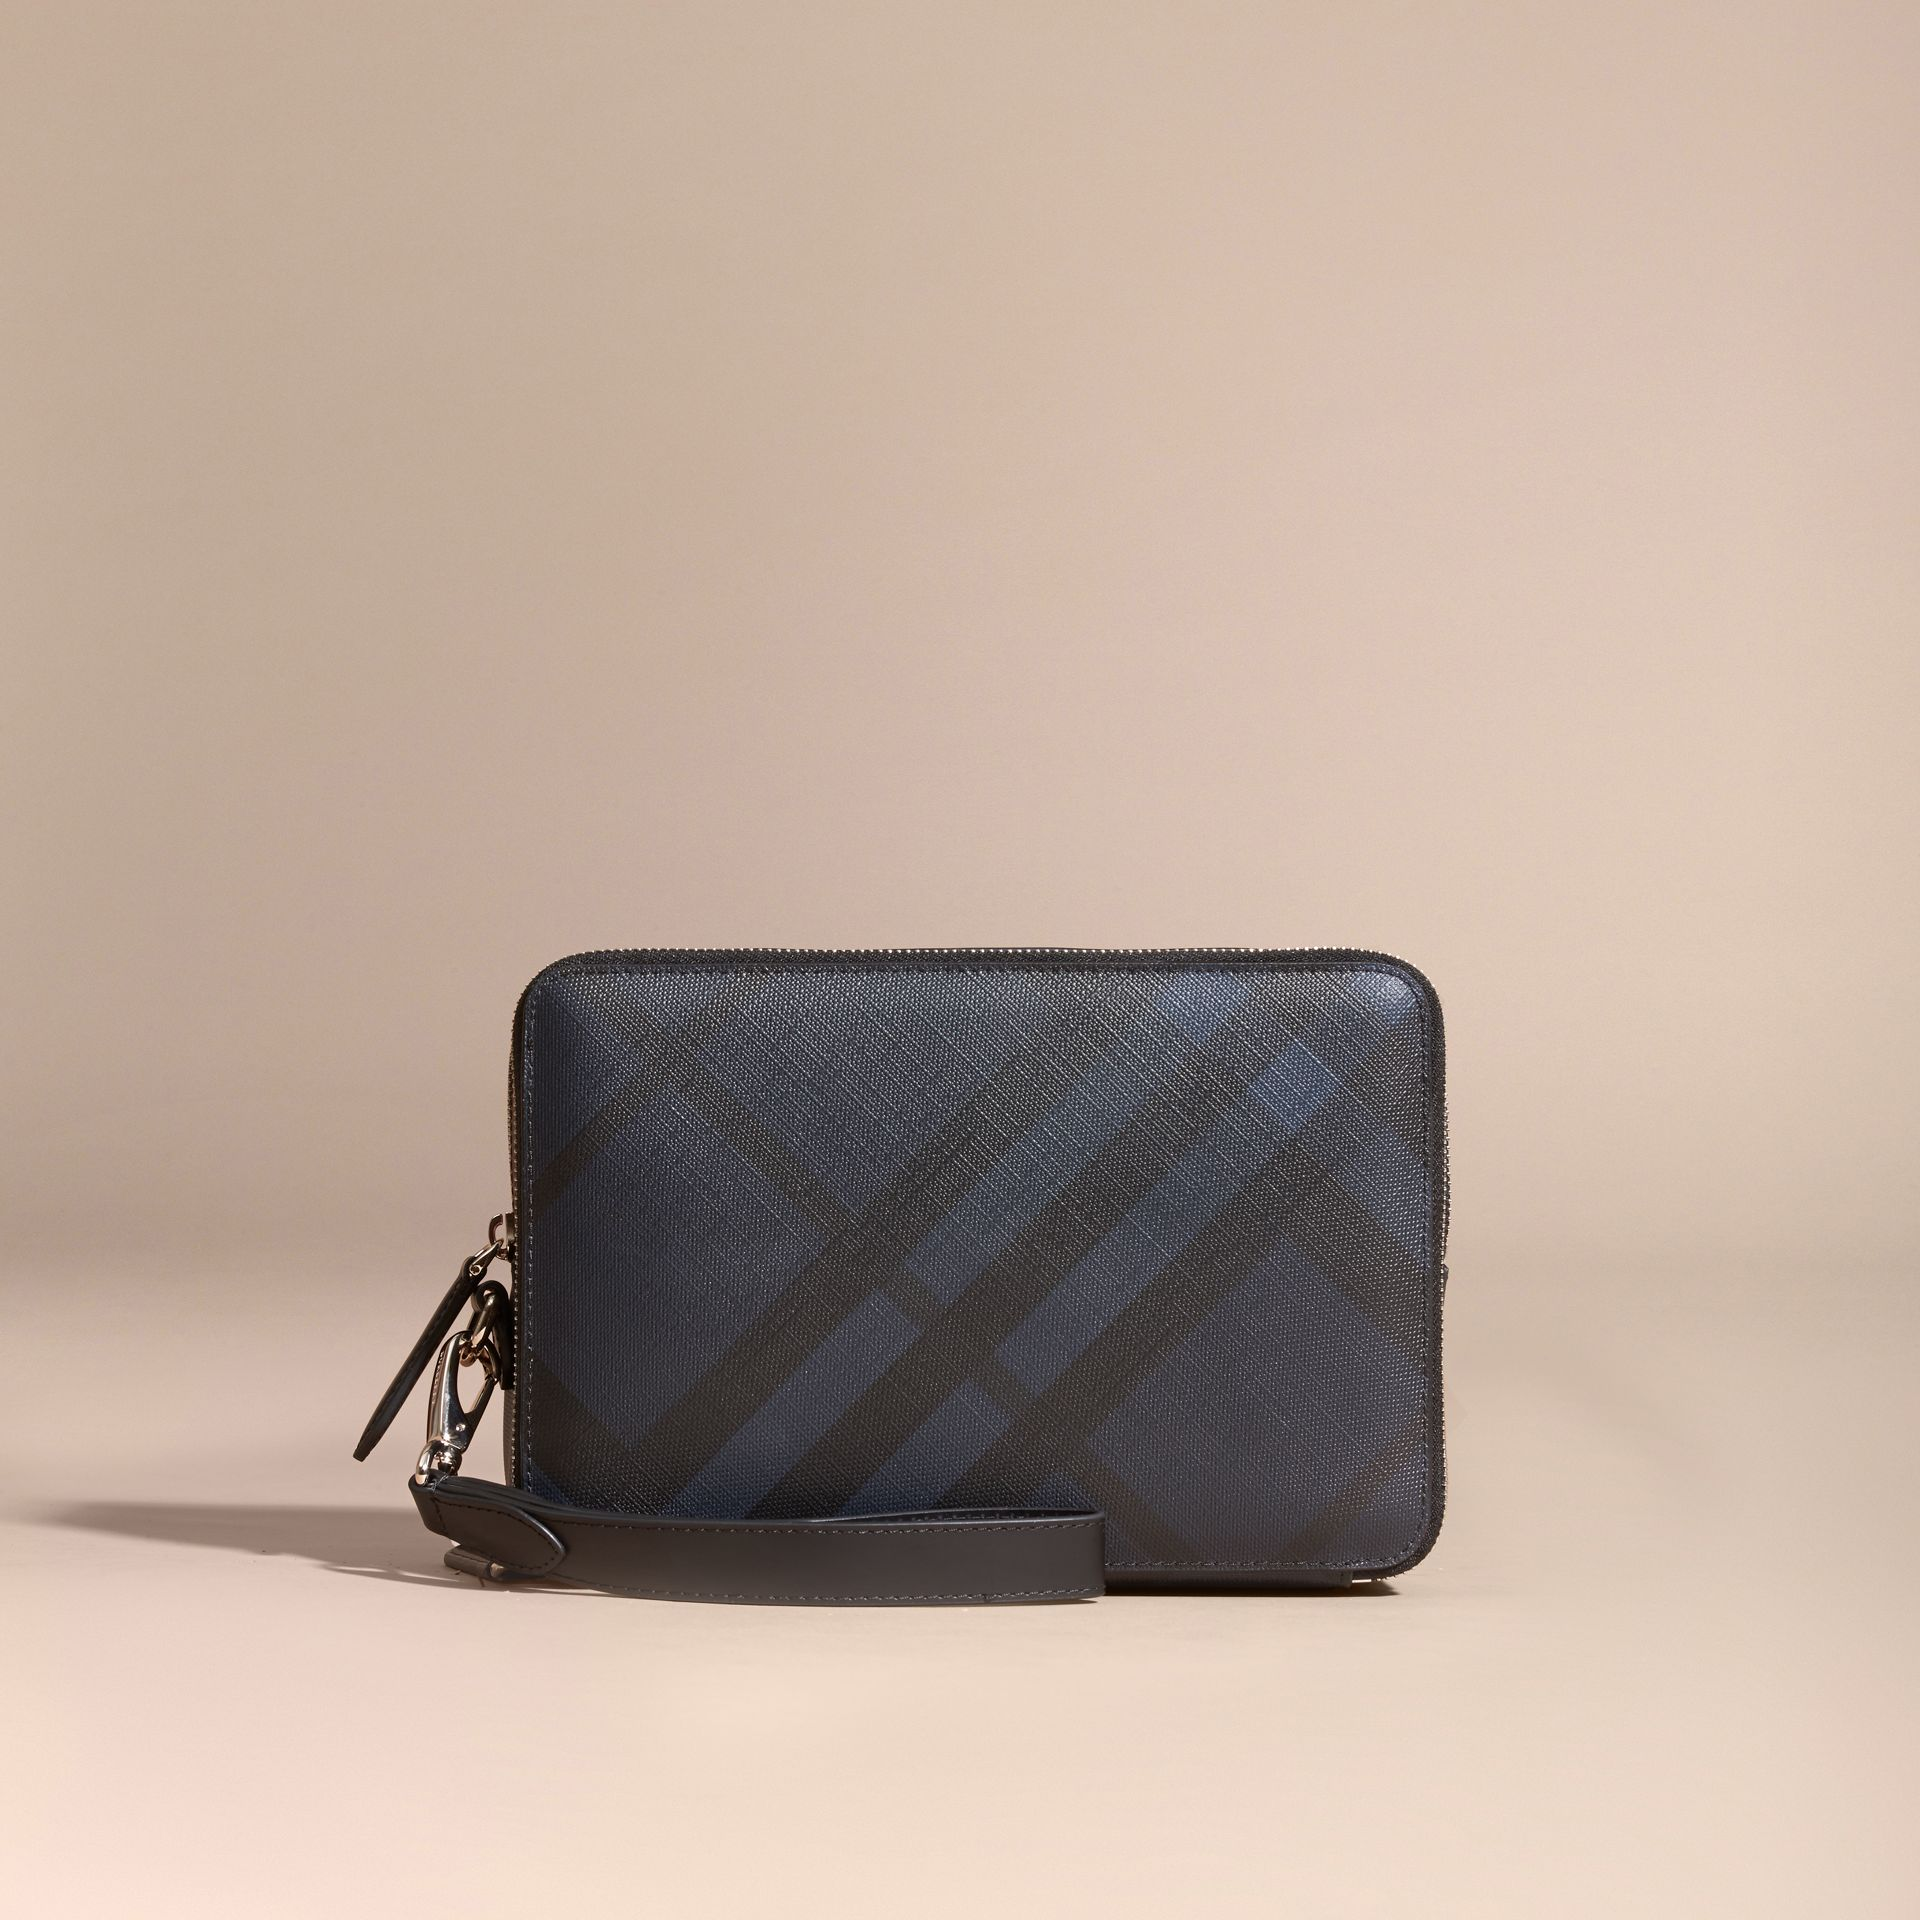 Leather-trimmed London Check Pouch in Navy/black - Men | Burberry Canada - gallery image 6